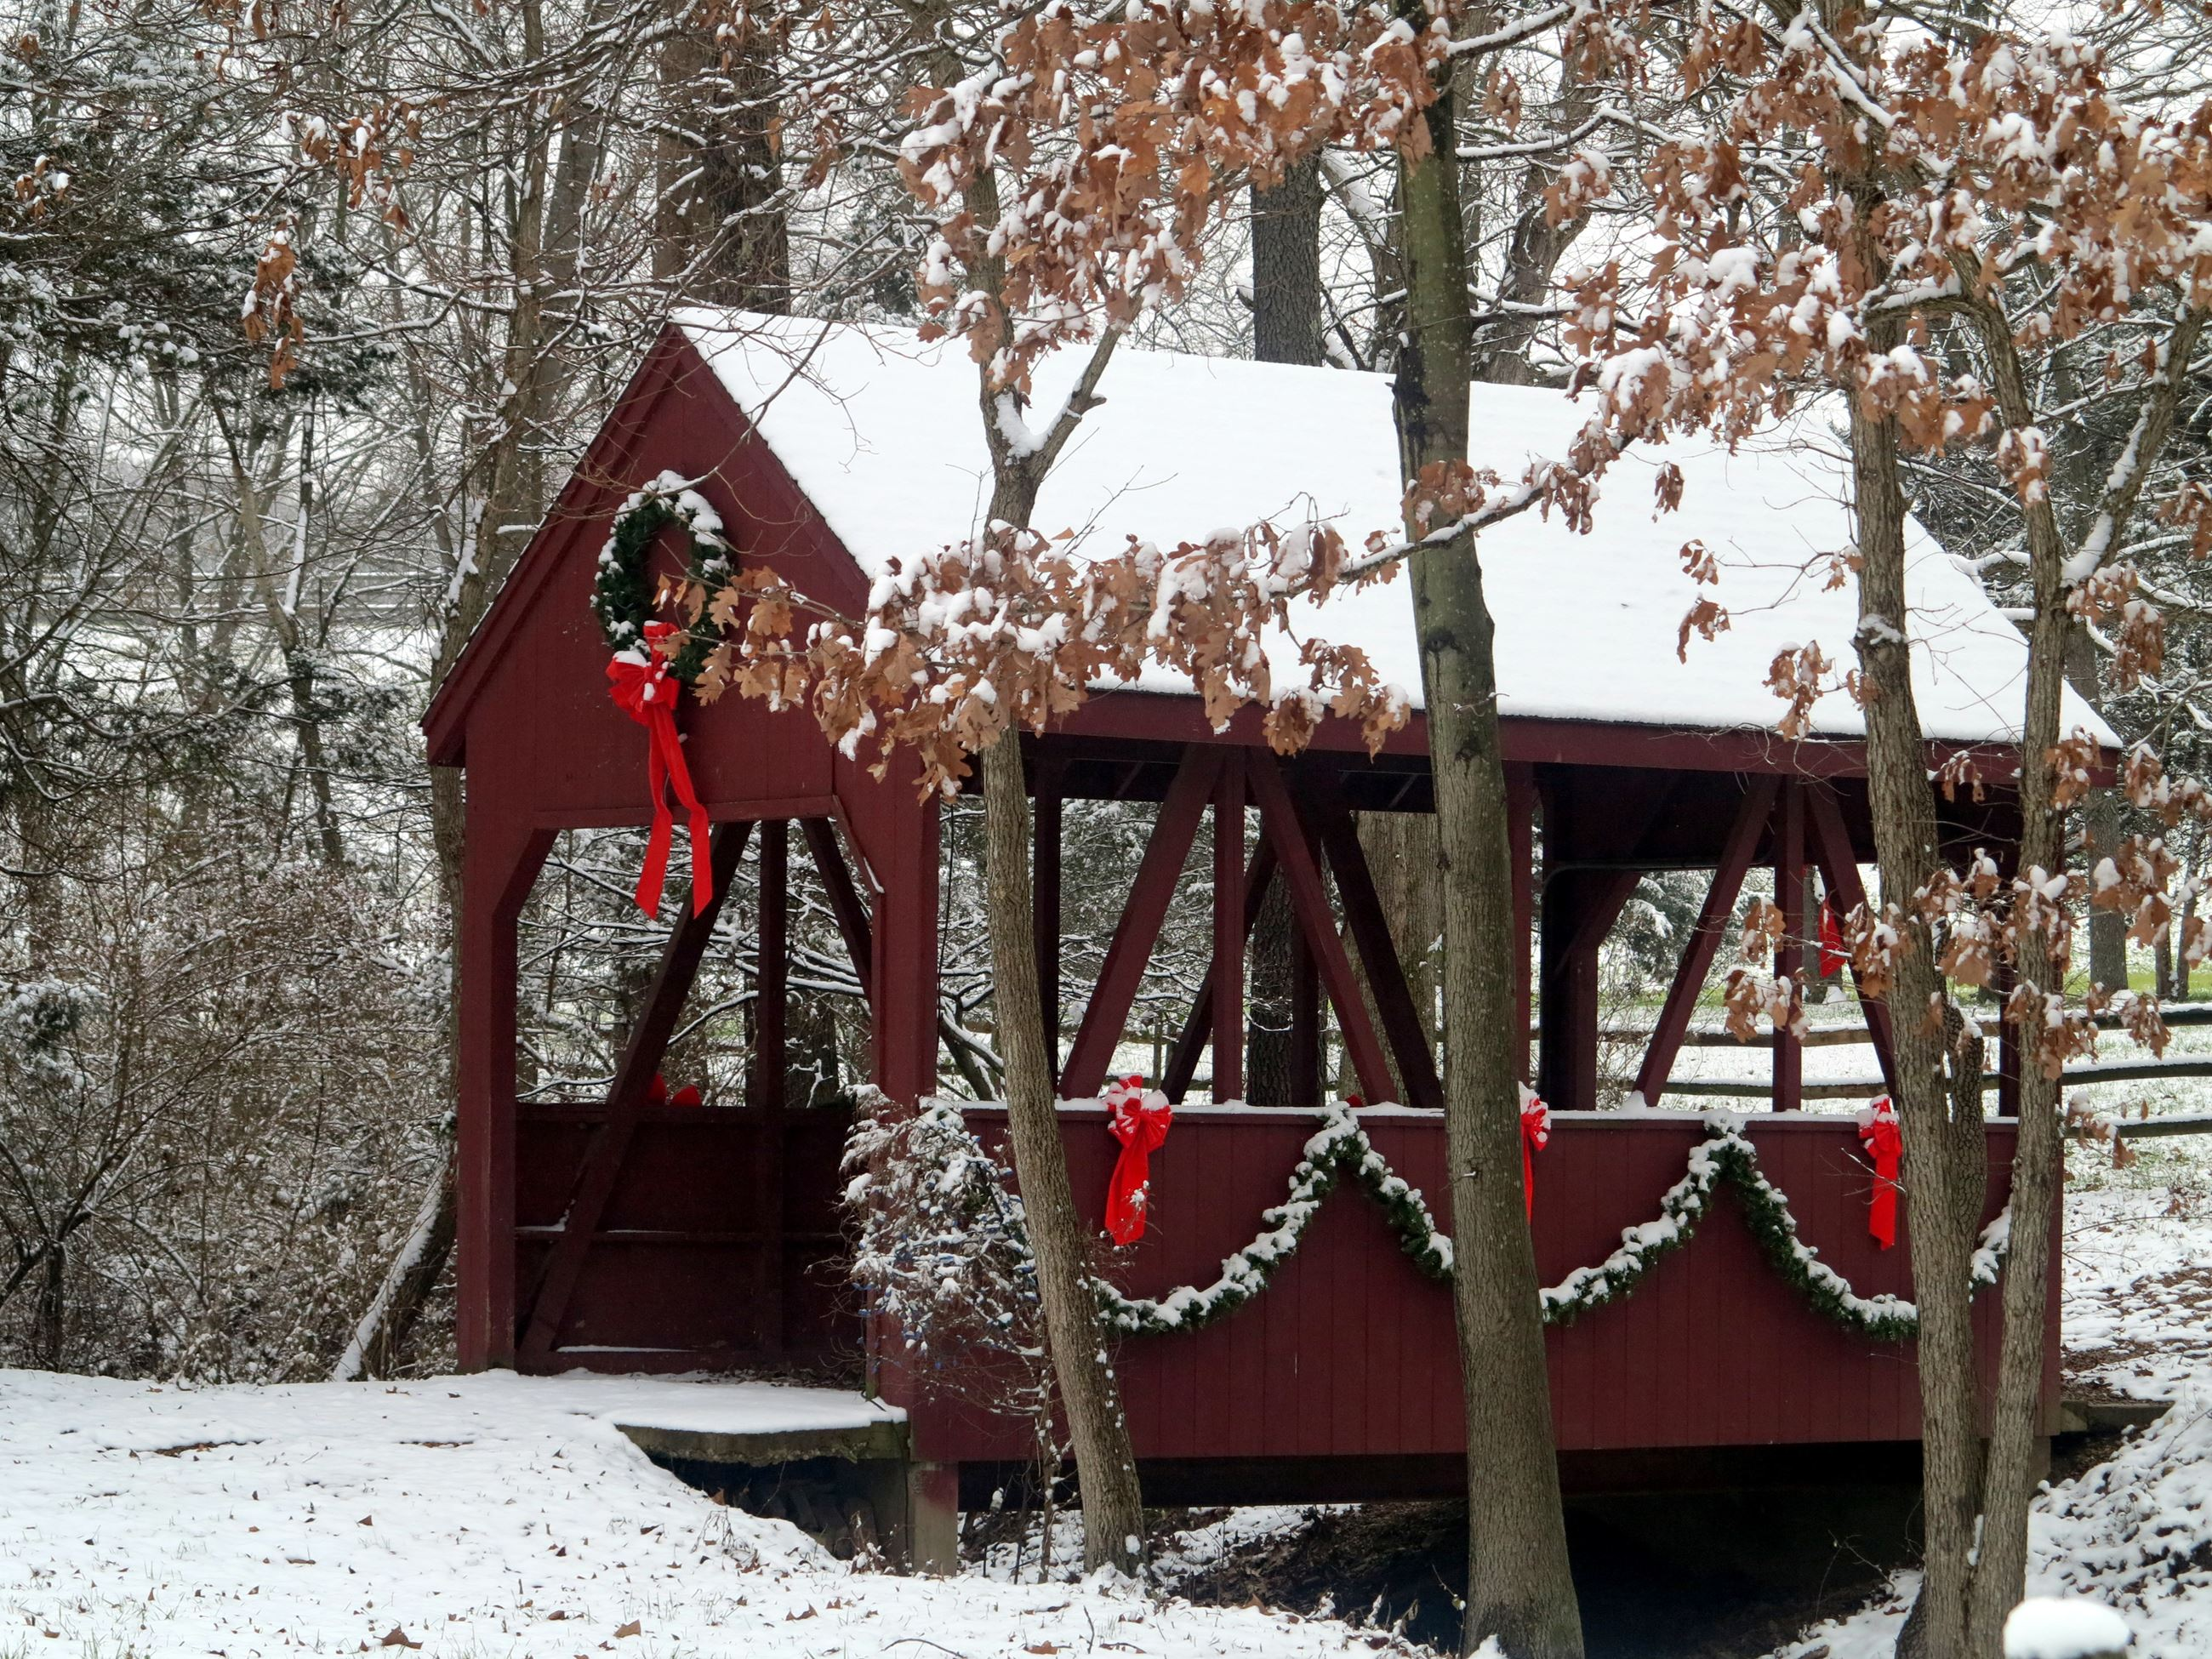 December 2017 Calendar image - covered bridge with red bows and garland in the snow